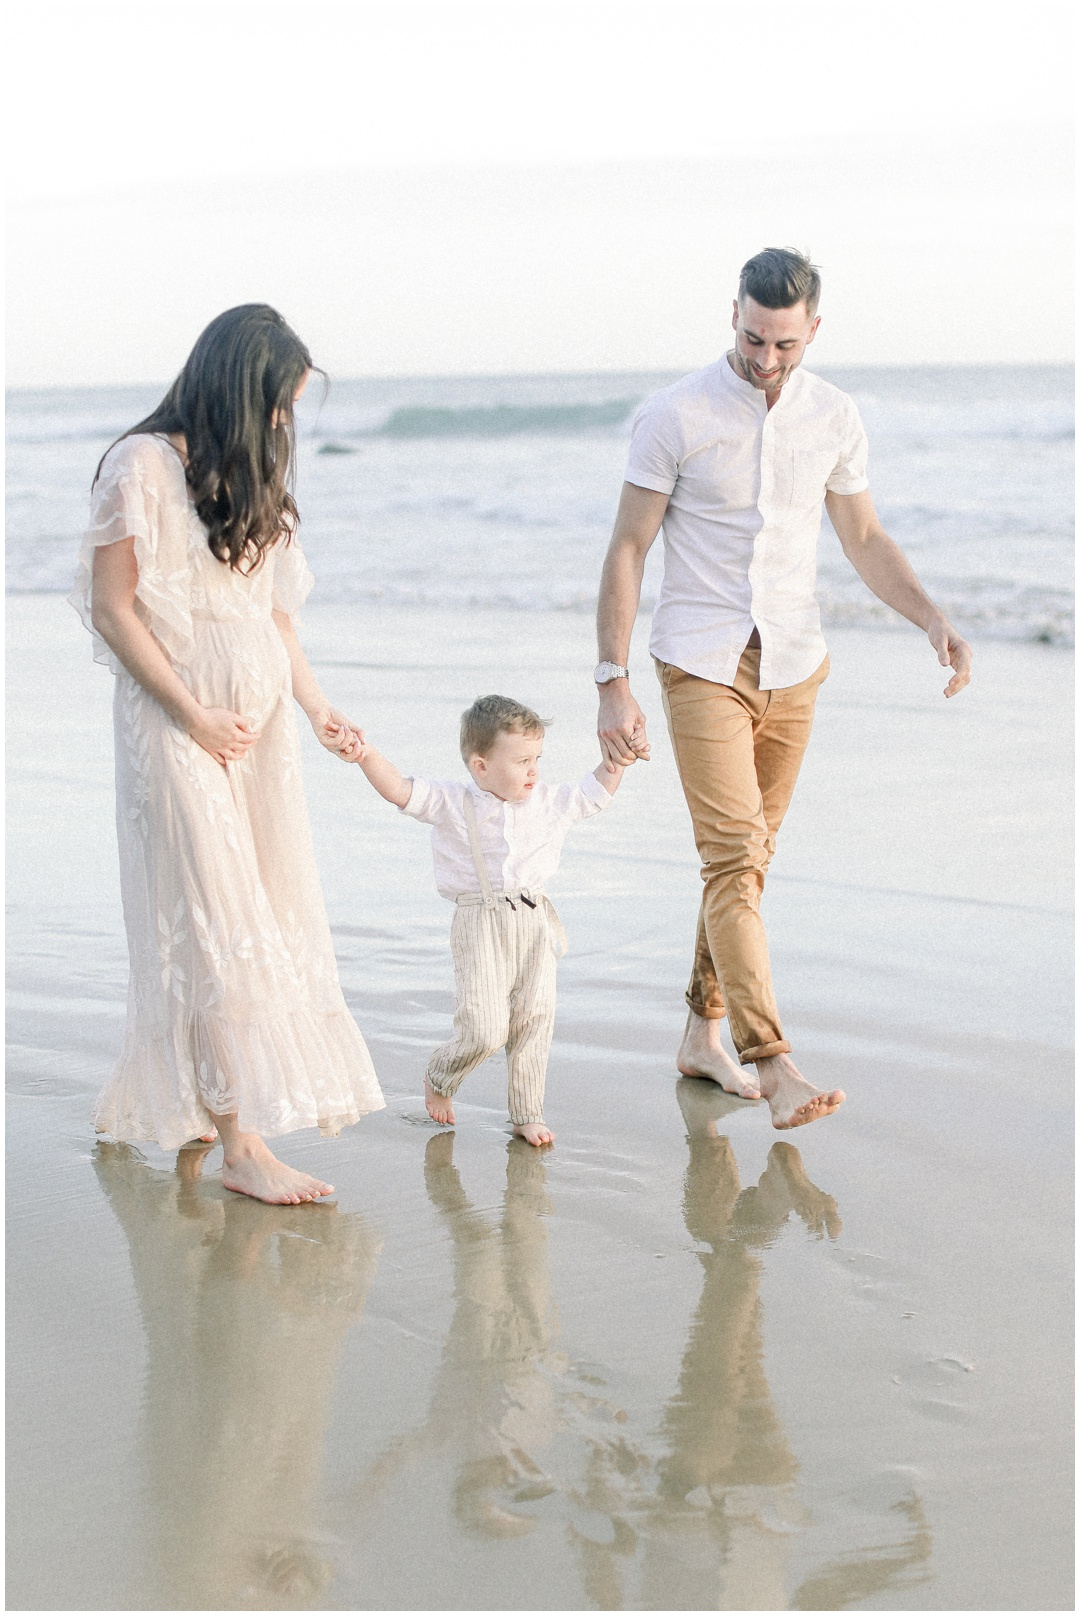 Newport_Beach_Newborn_Light_Airy_Natural_Photographer_Newport_Beach_Photographer_Orange_County_Family_Photographer_Cori_Kleckner_Photography_Huntington_Beach_Photographer_Family_OC_Newborn_Danielle_Lawley_Parker_Maternity_Family_Jordan_Lawley_3356.jpg